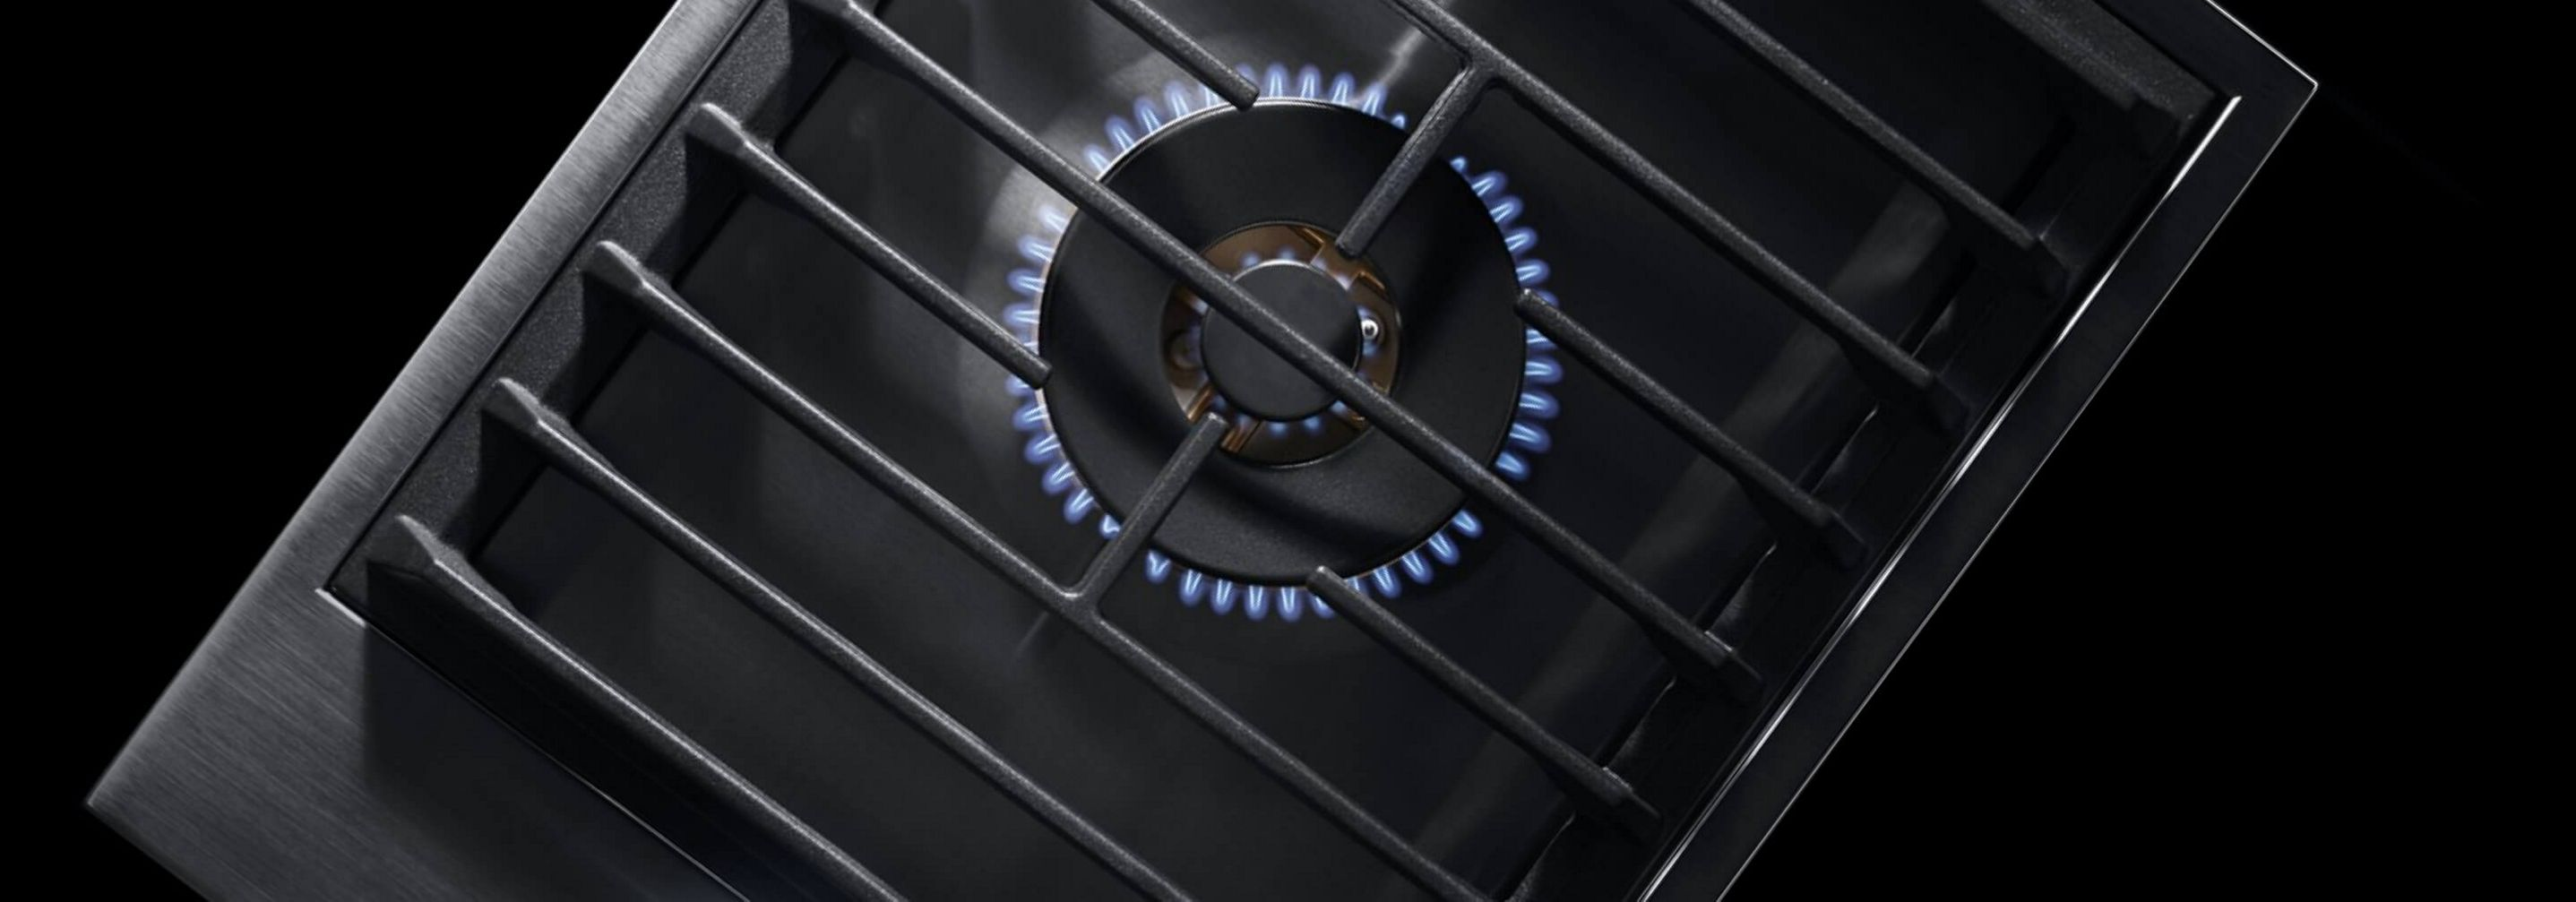 A lit 1-burner gas cooktop with wok ring.